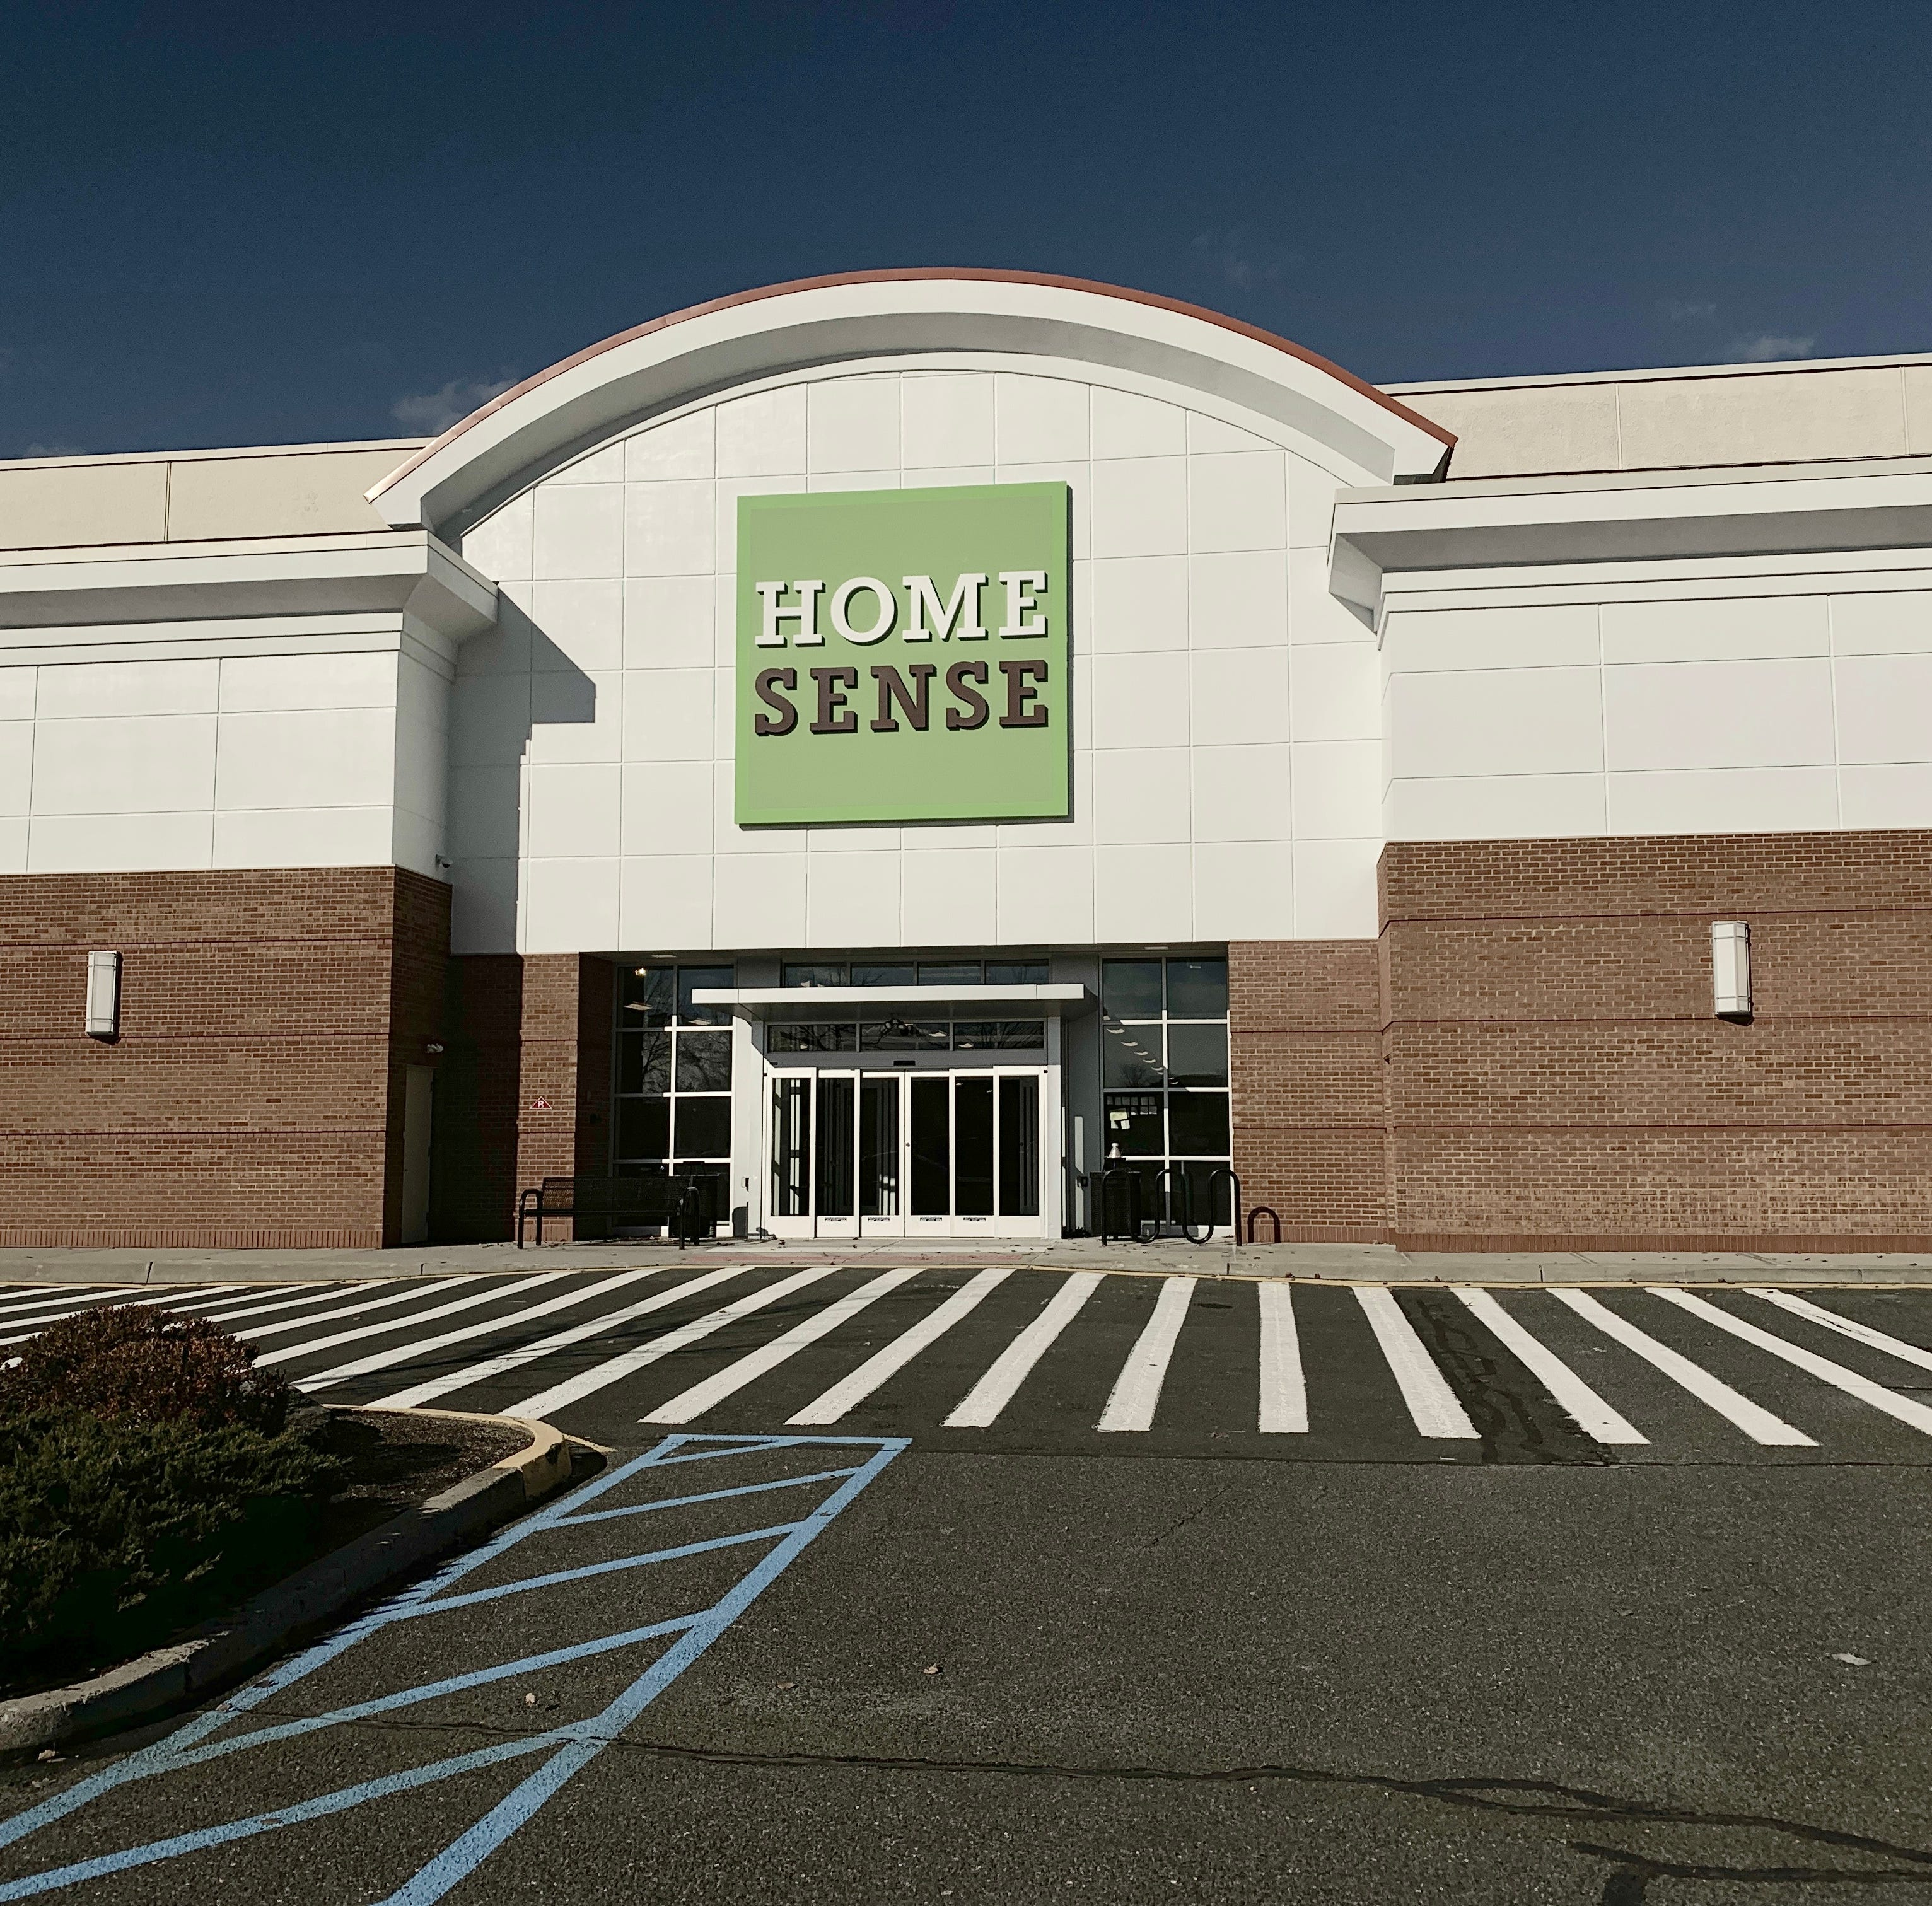 Homesense coming to Manalapan